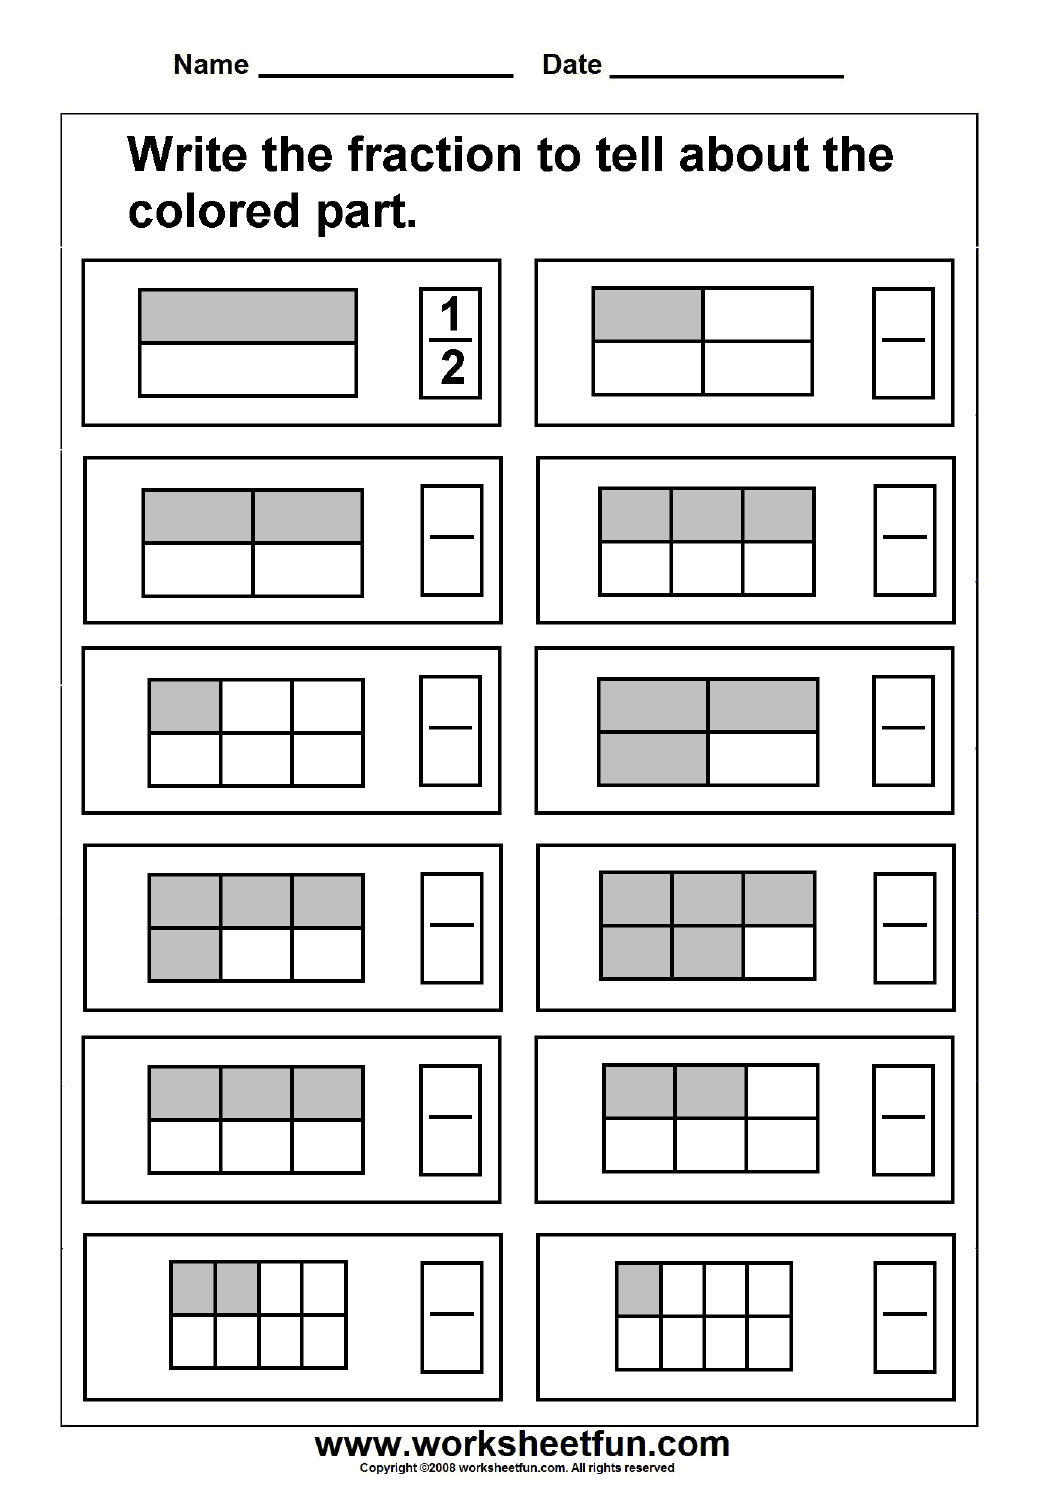 Fraction FREE Printable Worksheets Worksheetfun – Fraction Concepts Worksheets